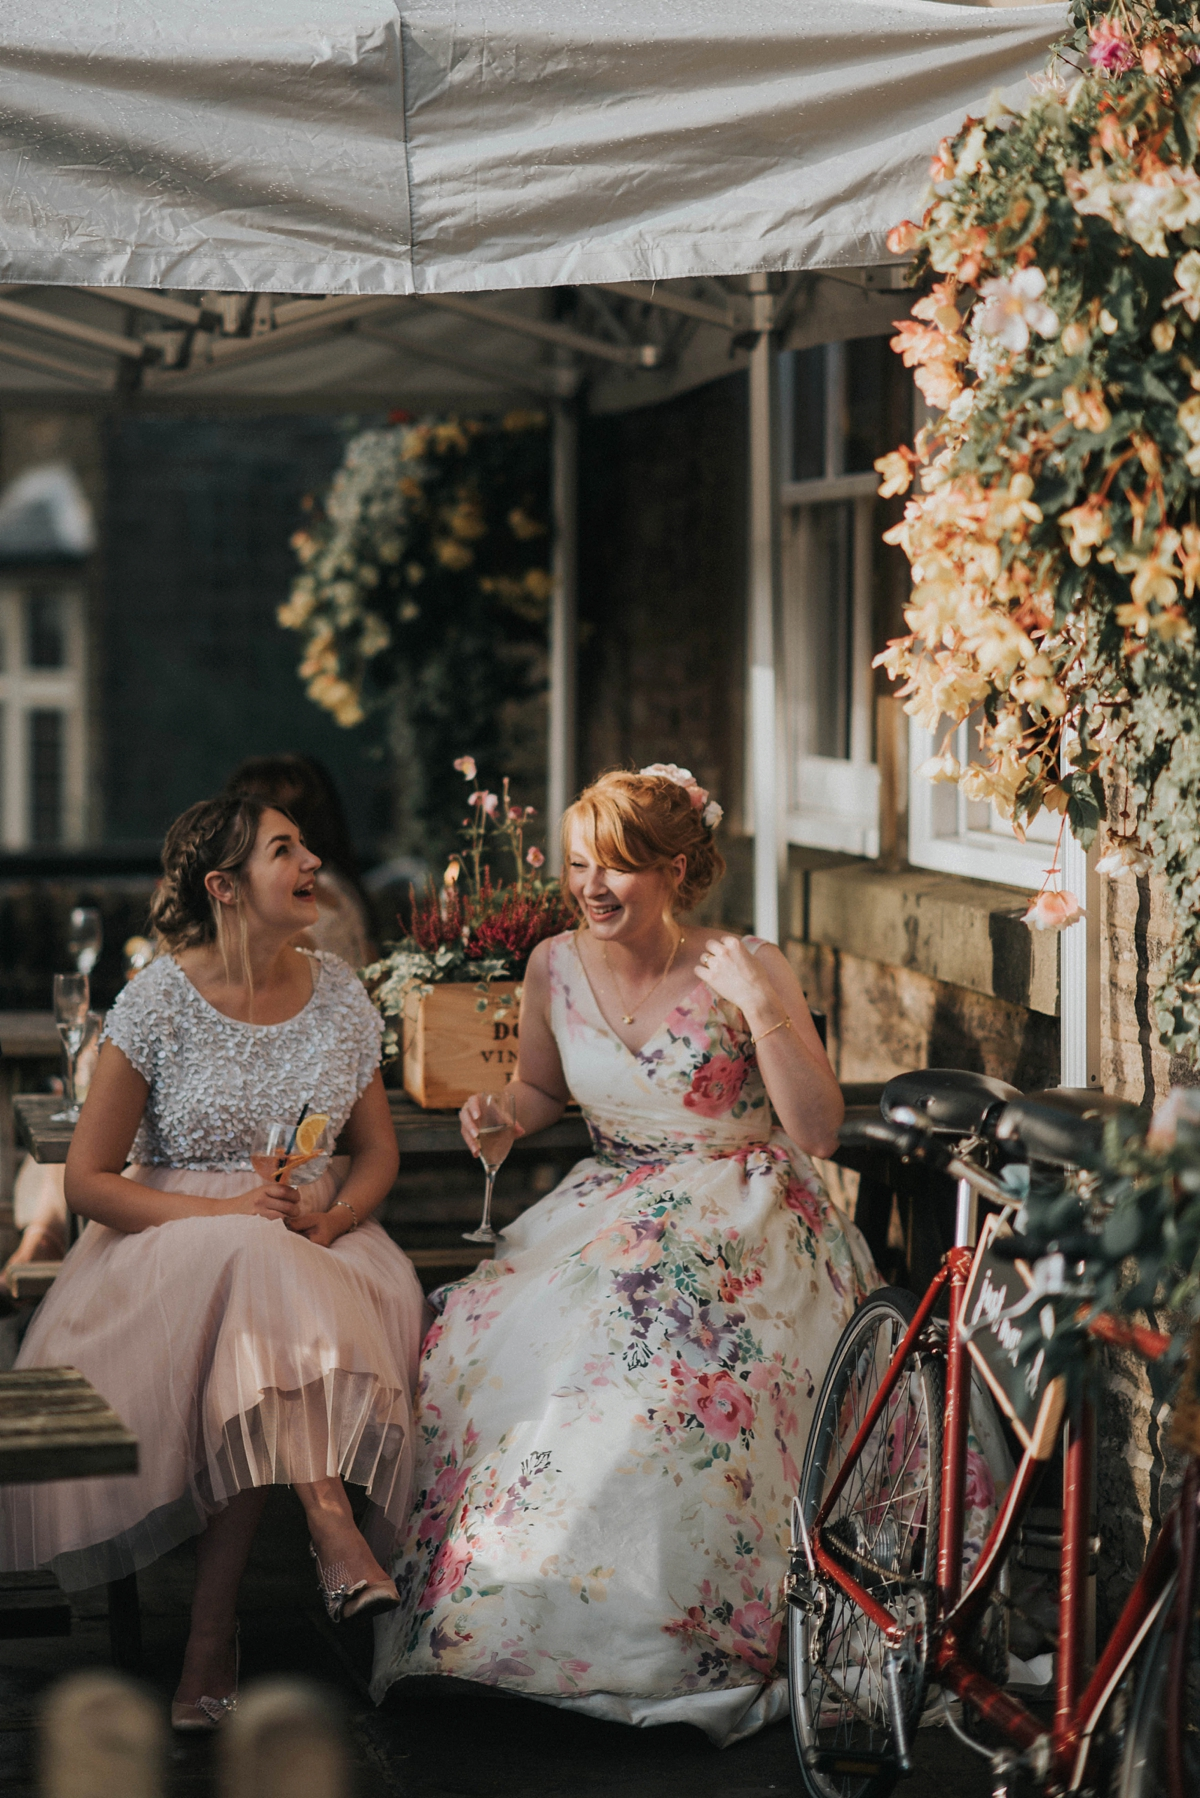 b772aed0e11 ... Floral wedding dress by Charlotte Balbier - A Floral Wedding Dress Dress  For A Handmade and ...